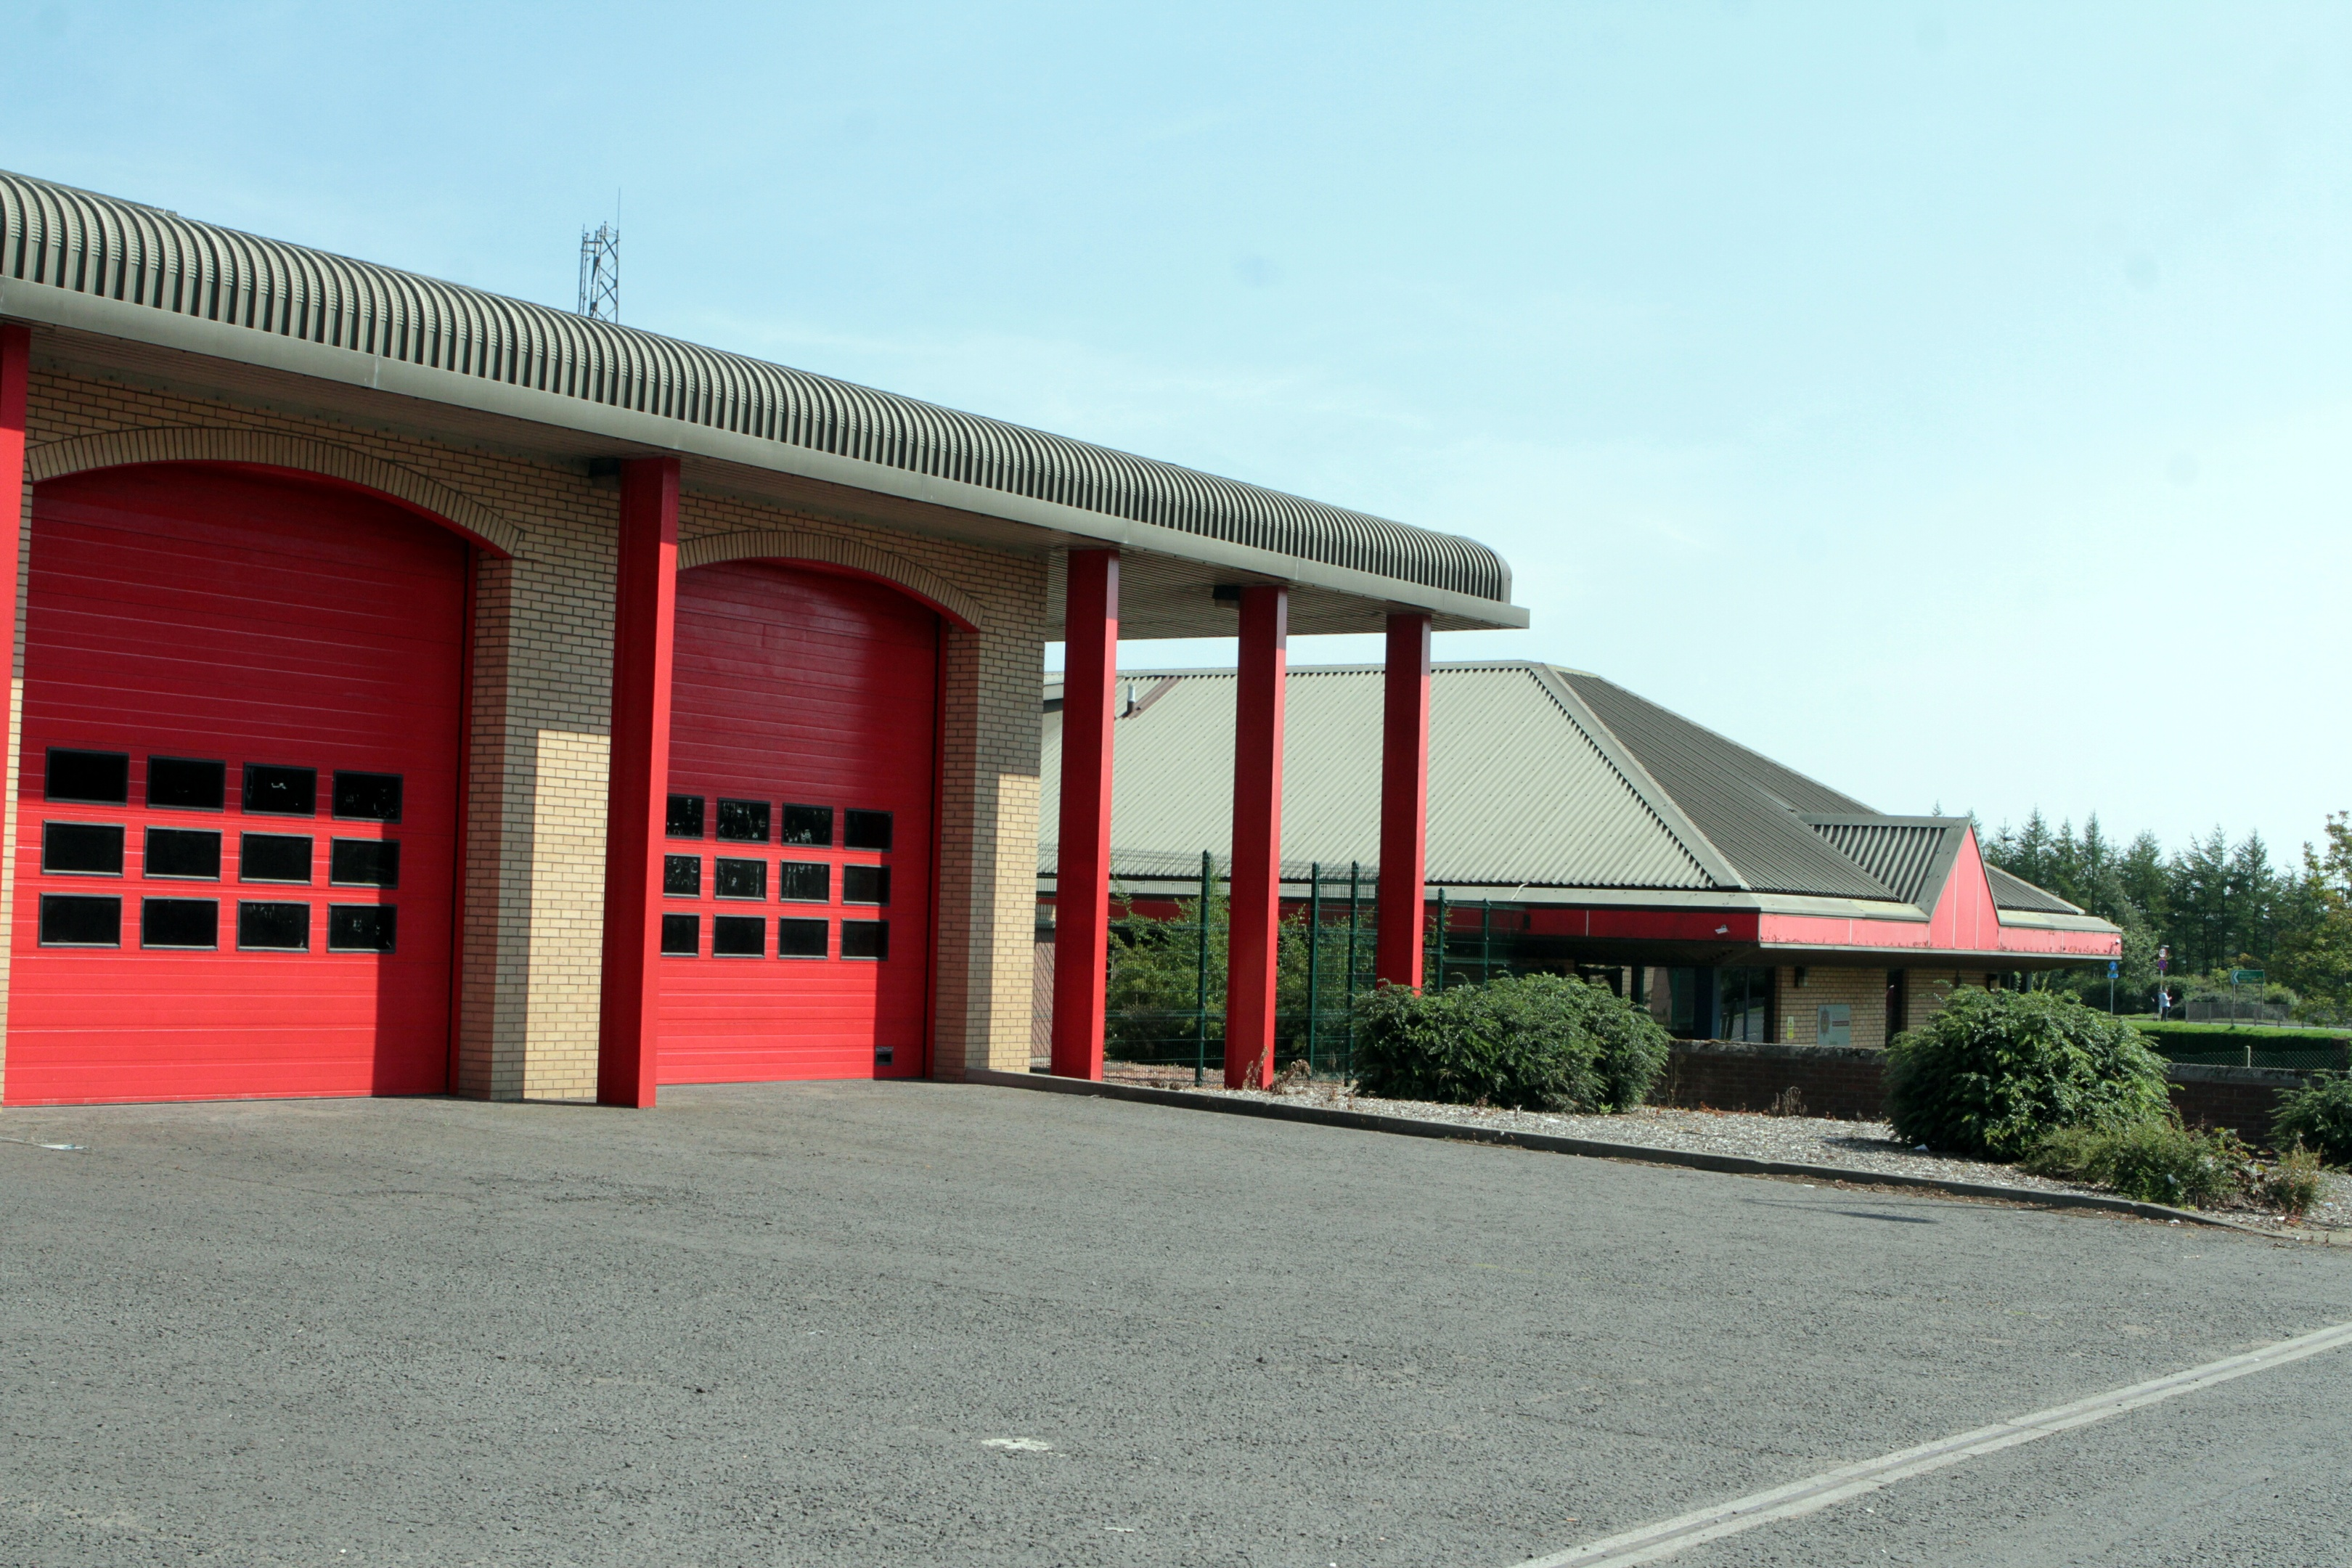 Macalpine Road Fire Station.